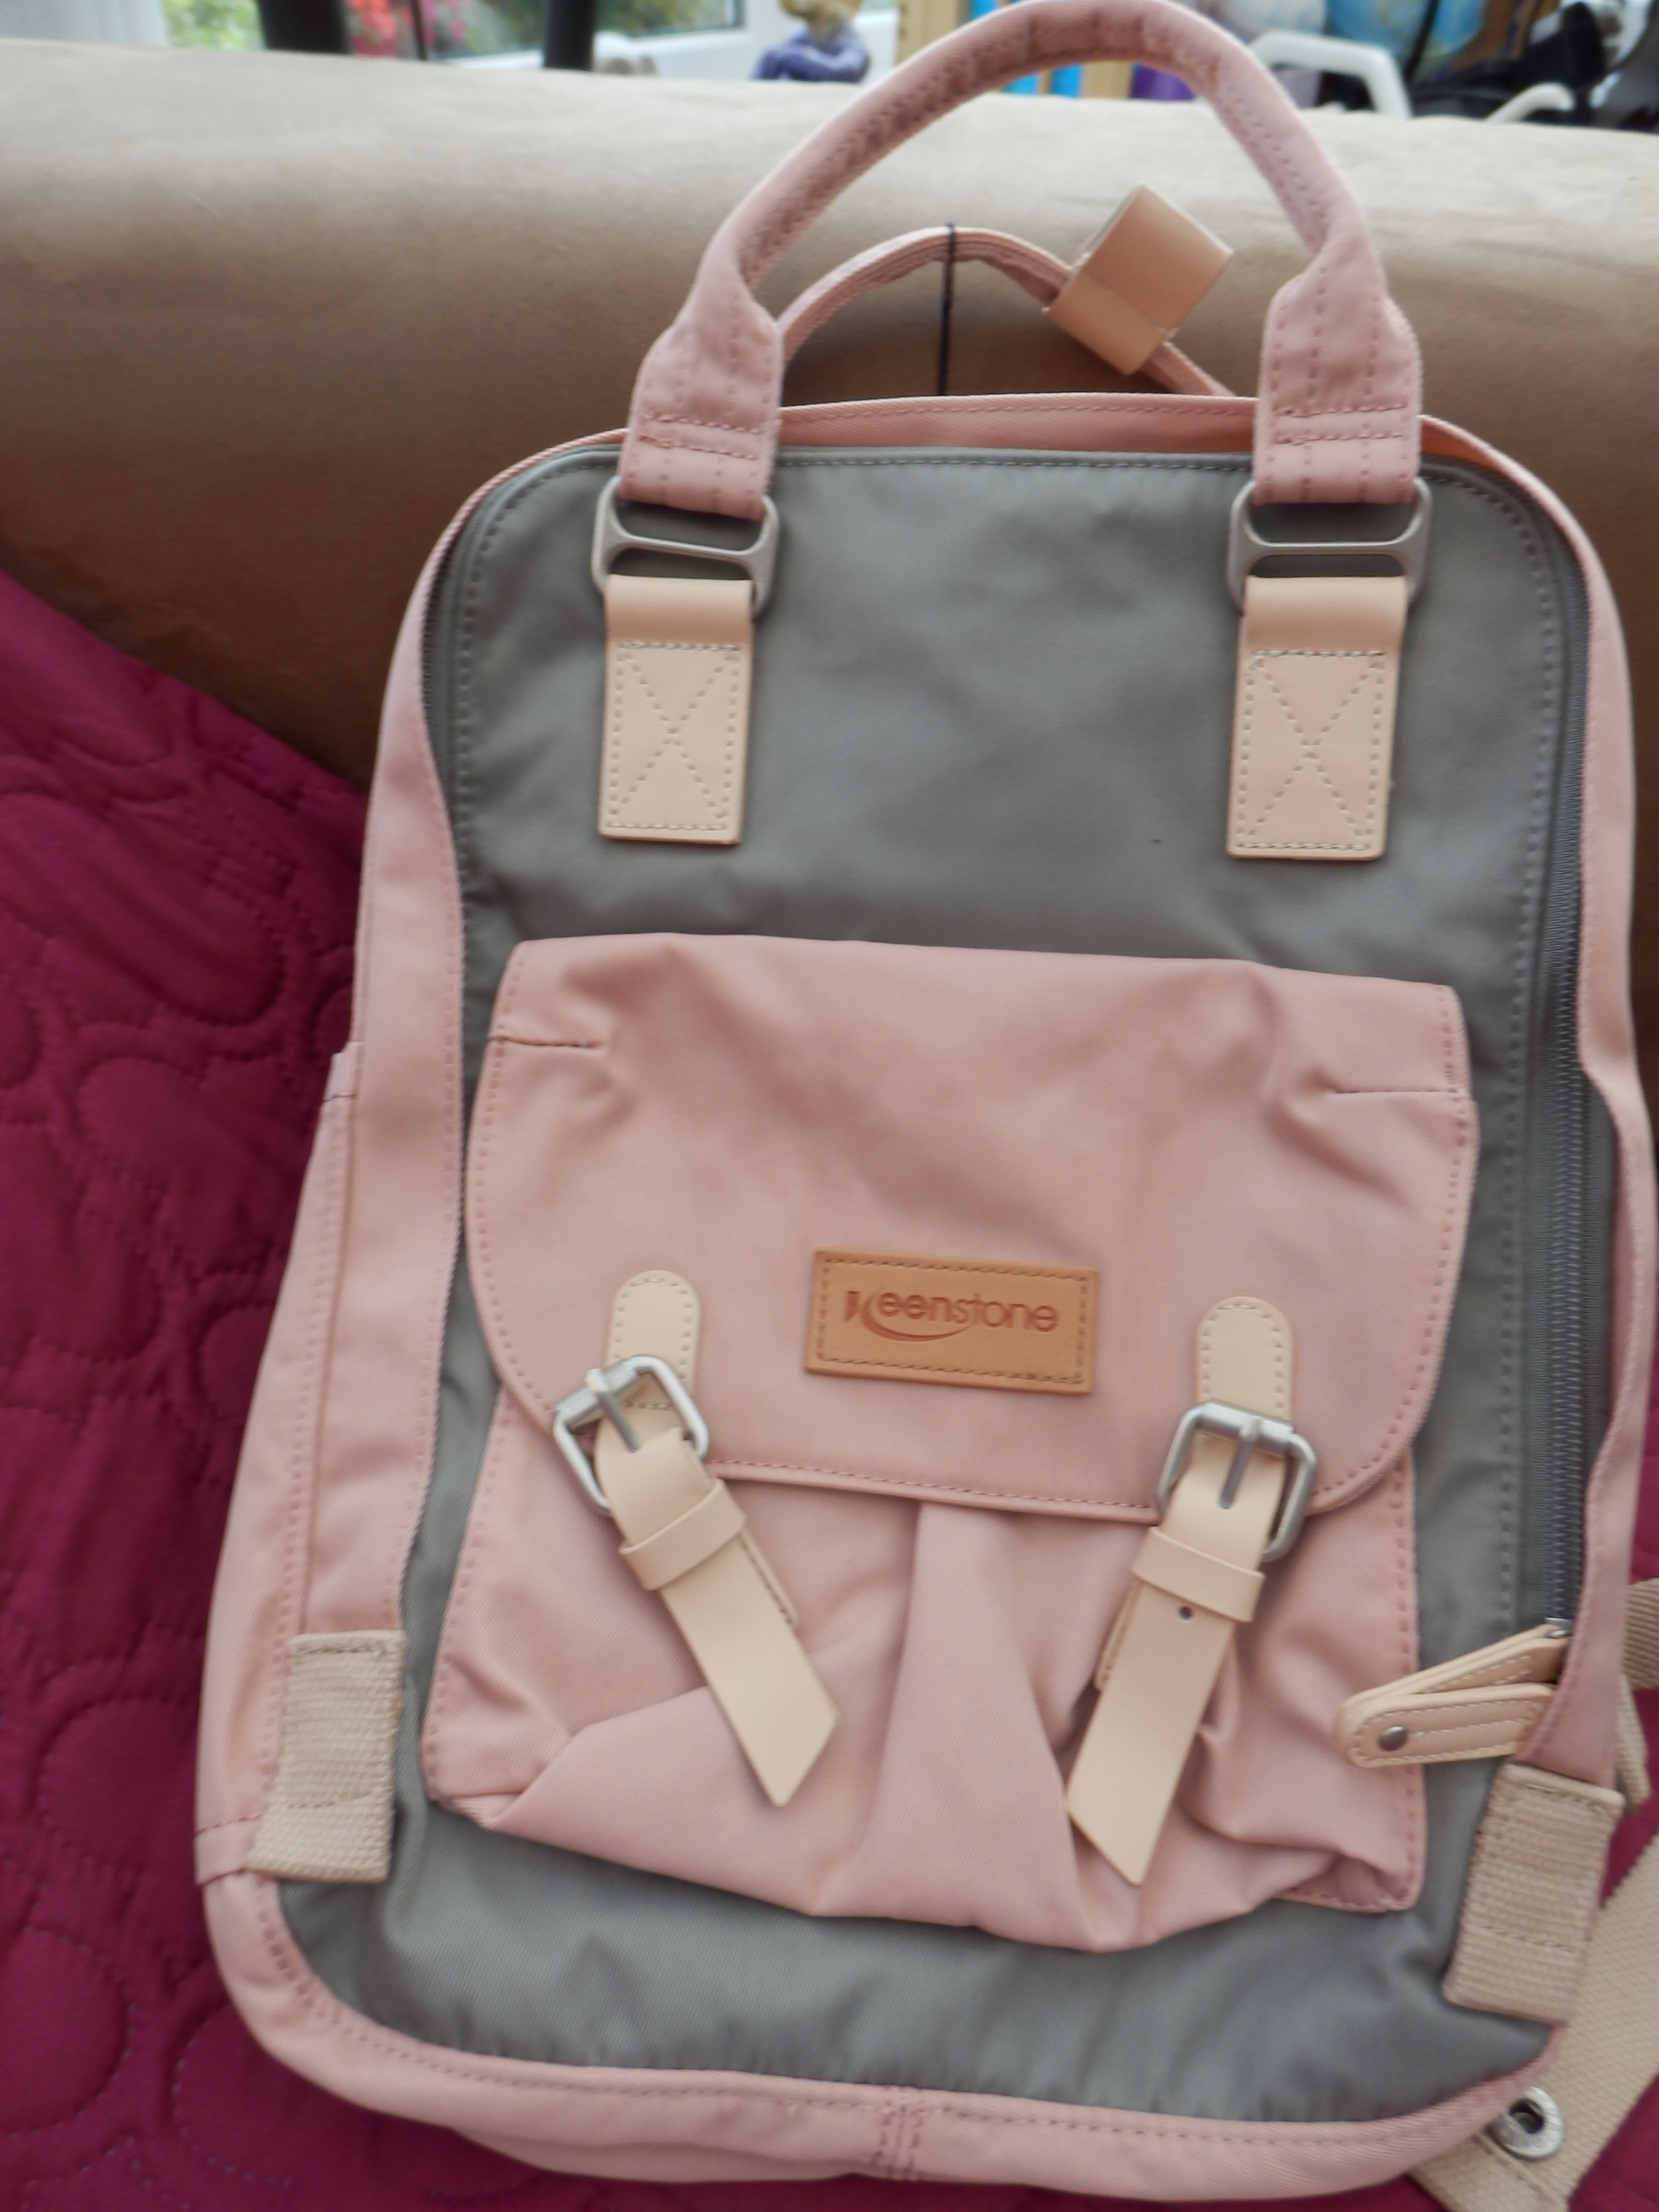 Rucksack Satchel for Women, Pink, with Many Pockets and with USB Charging Port by Keenstone